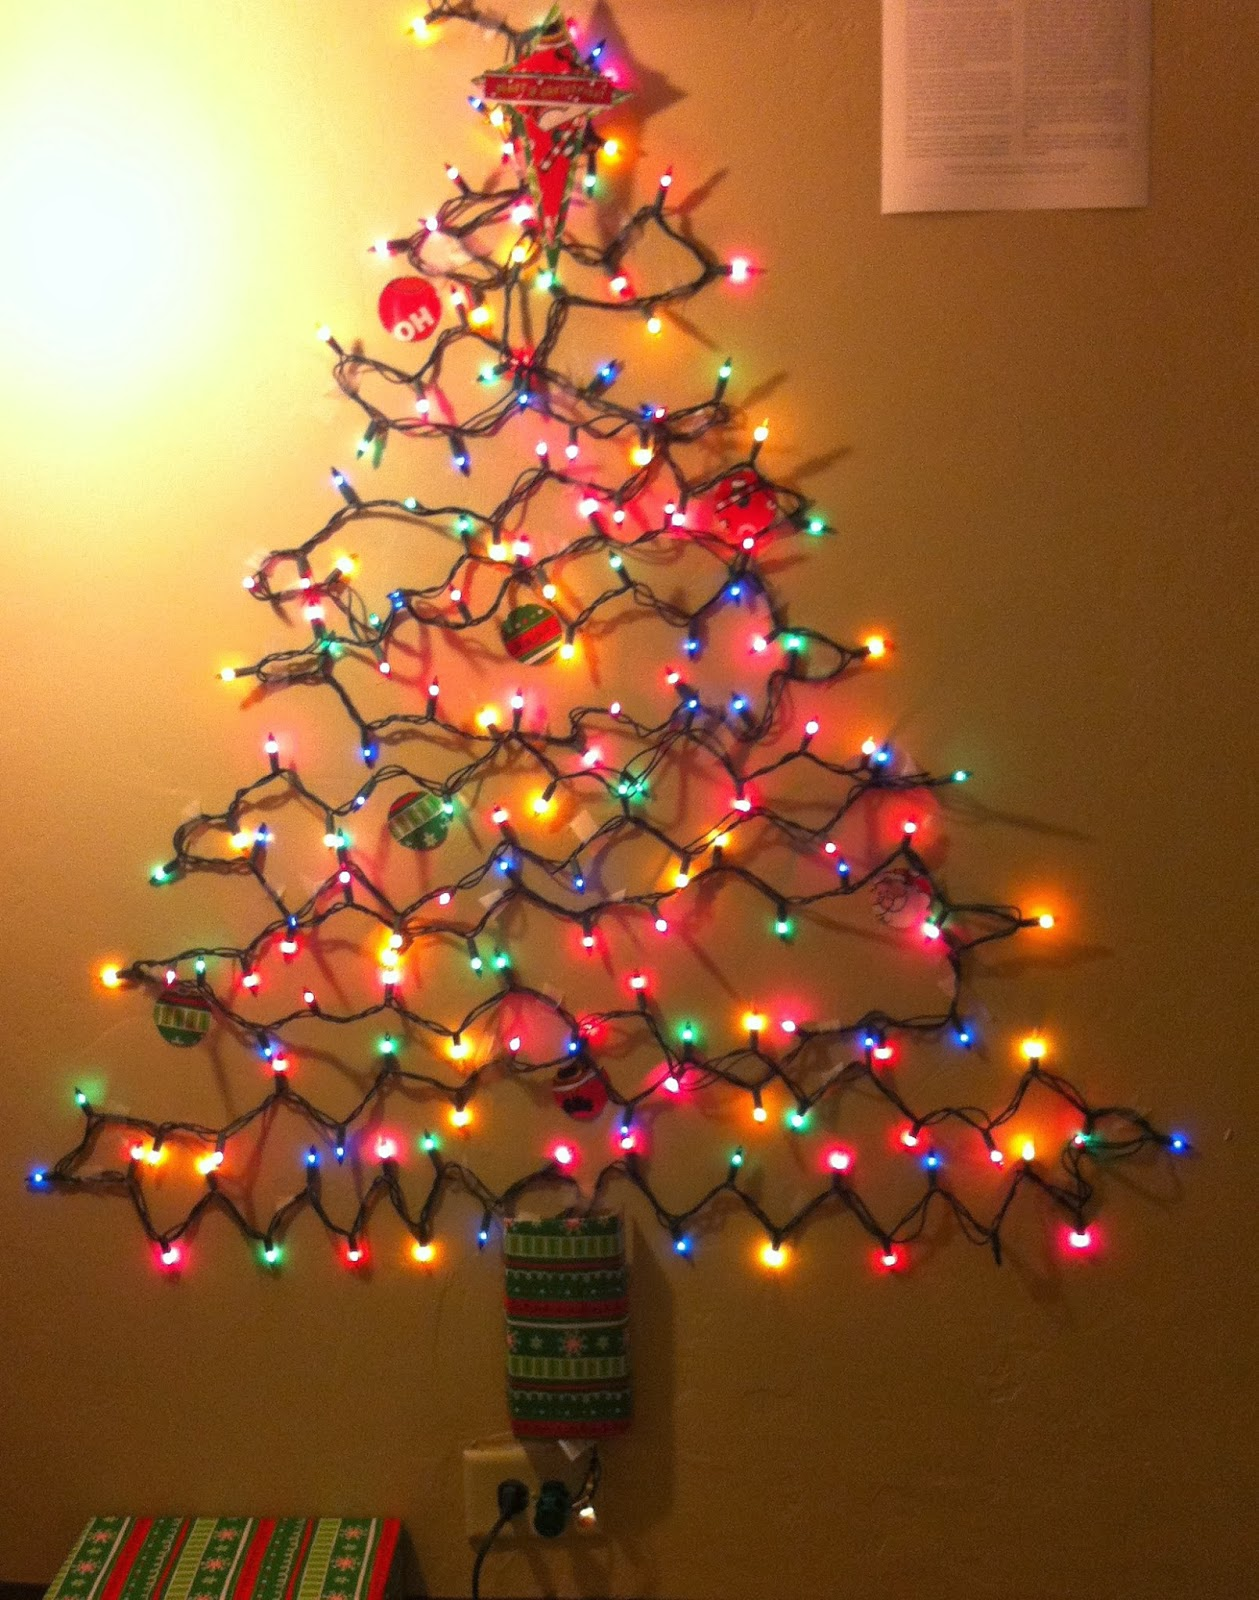 Now You Know How To Make A Wall Christmas Tree With Lights At Your Home Easily Hy Holidays